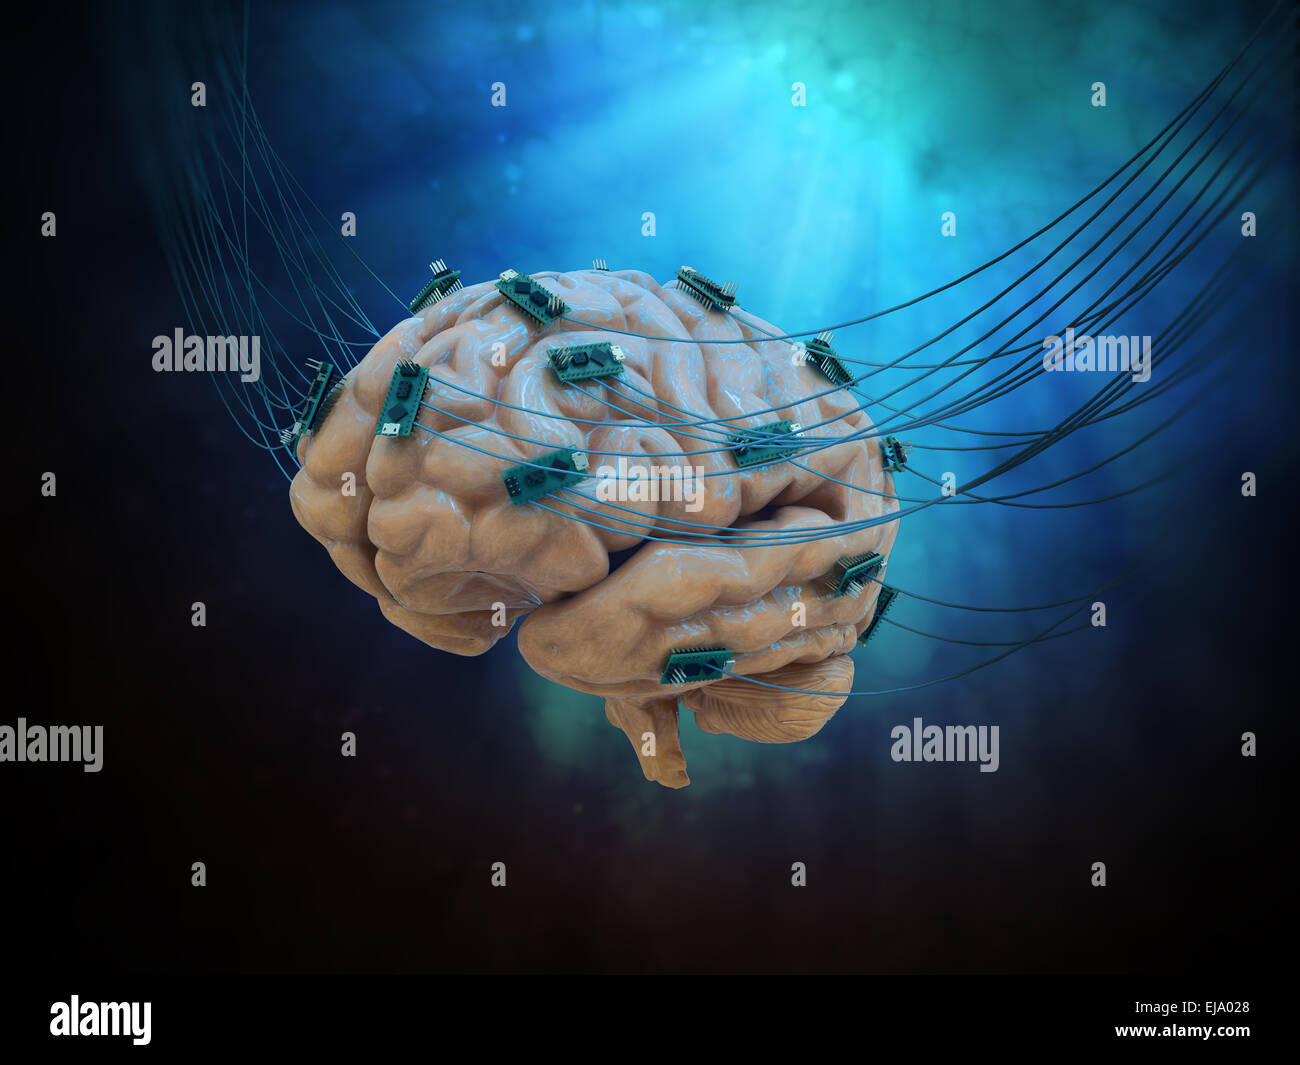 Human brain connected to cables and computer chips - Stock Image